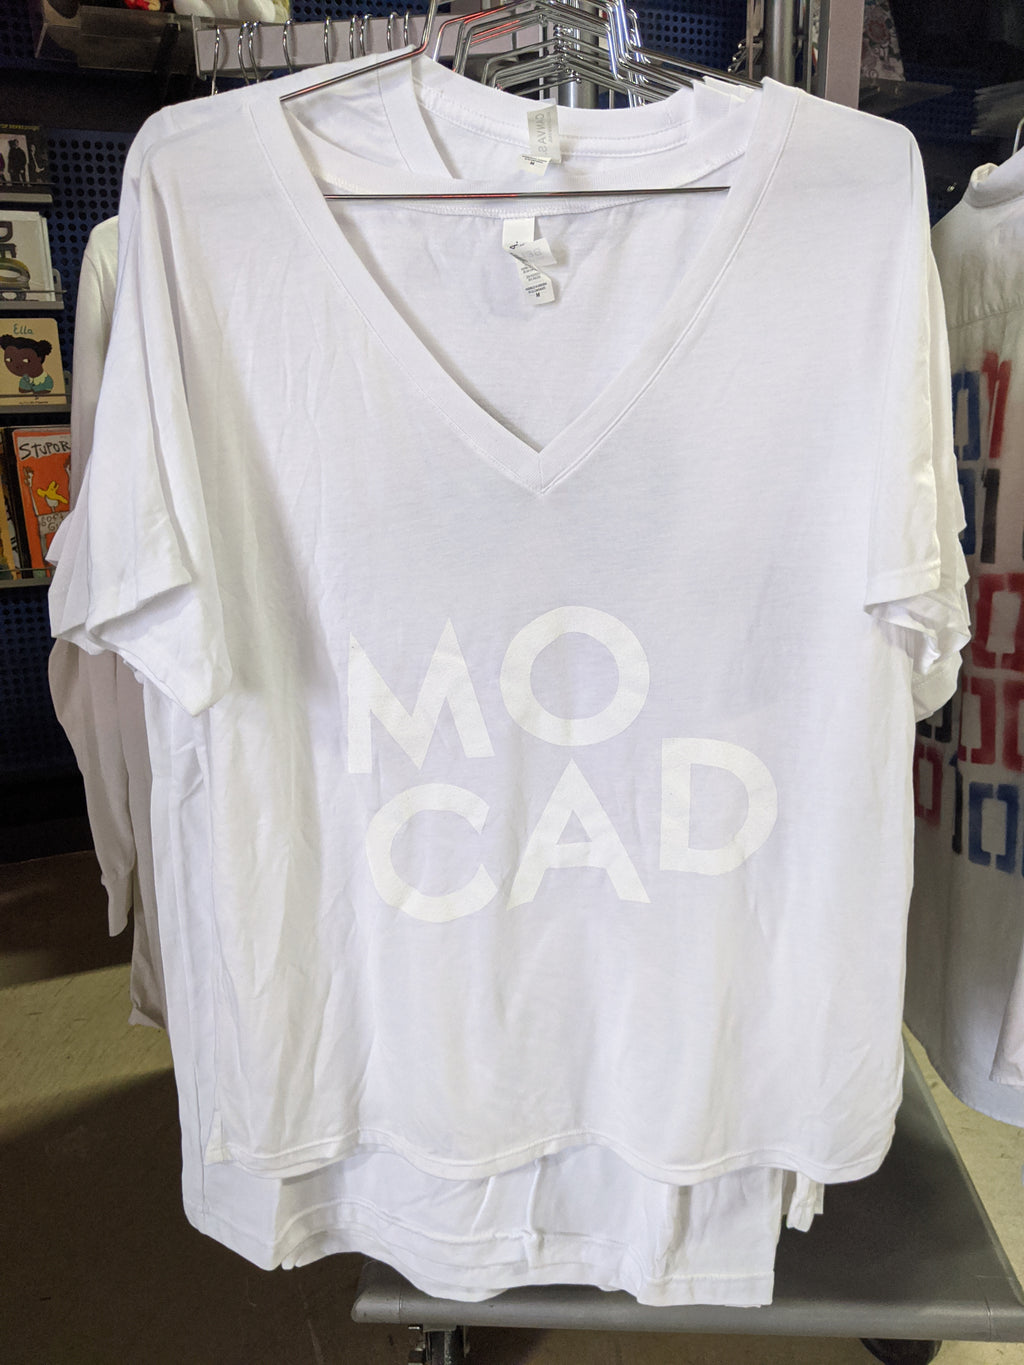 MOCAD White on White V-Neck shirt